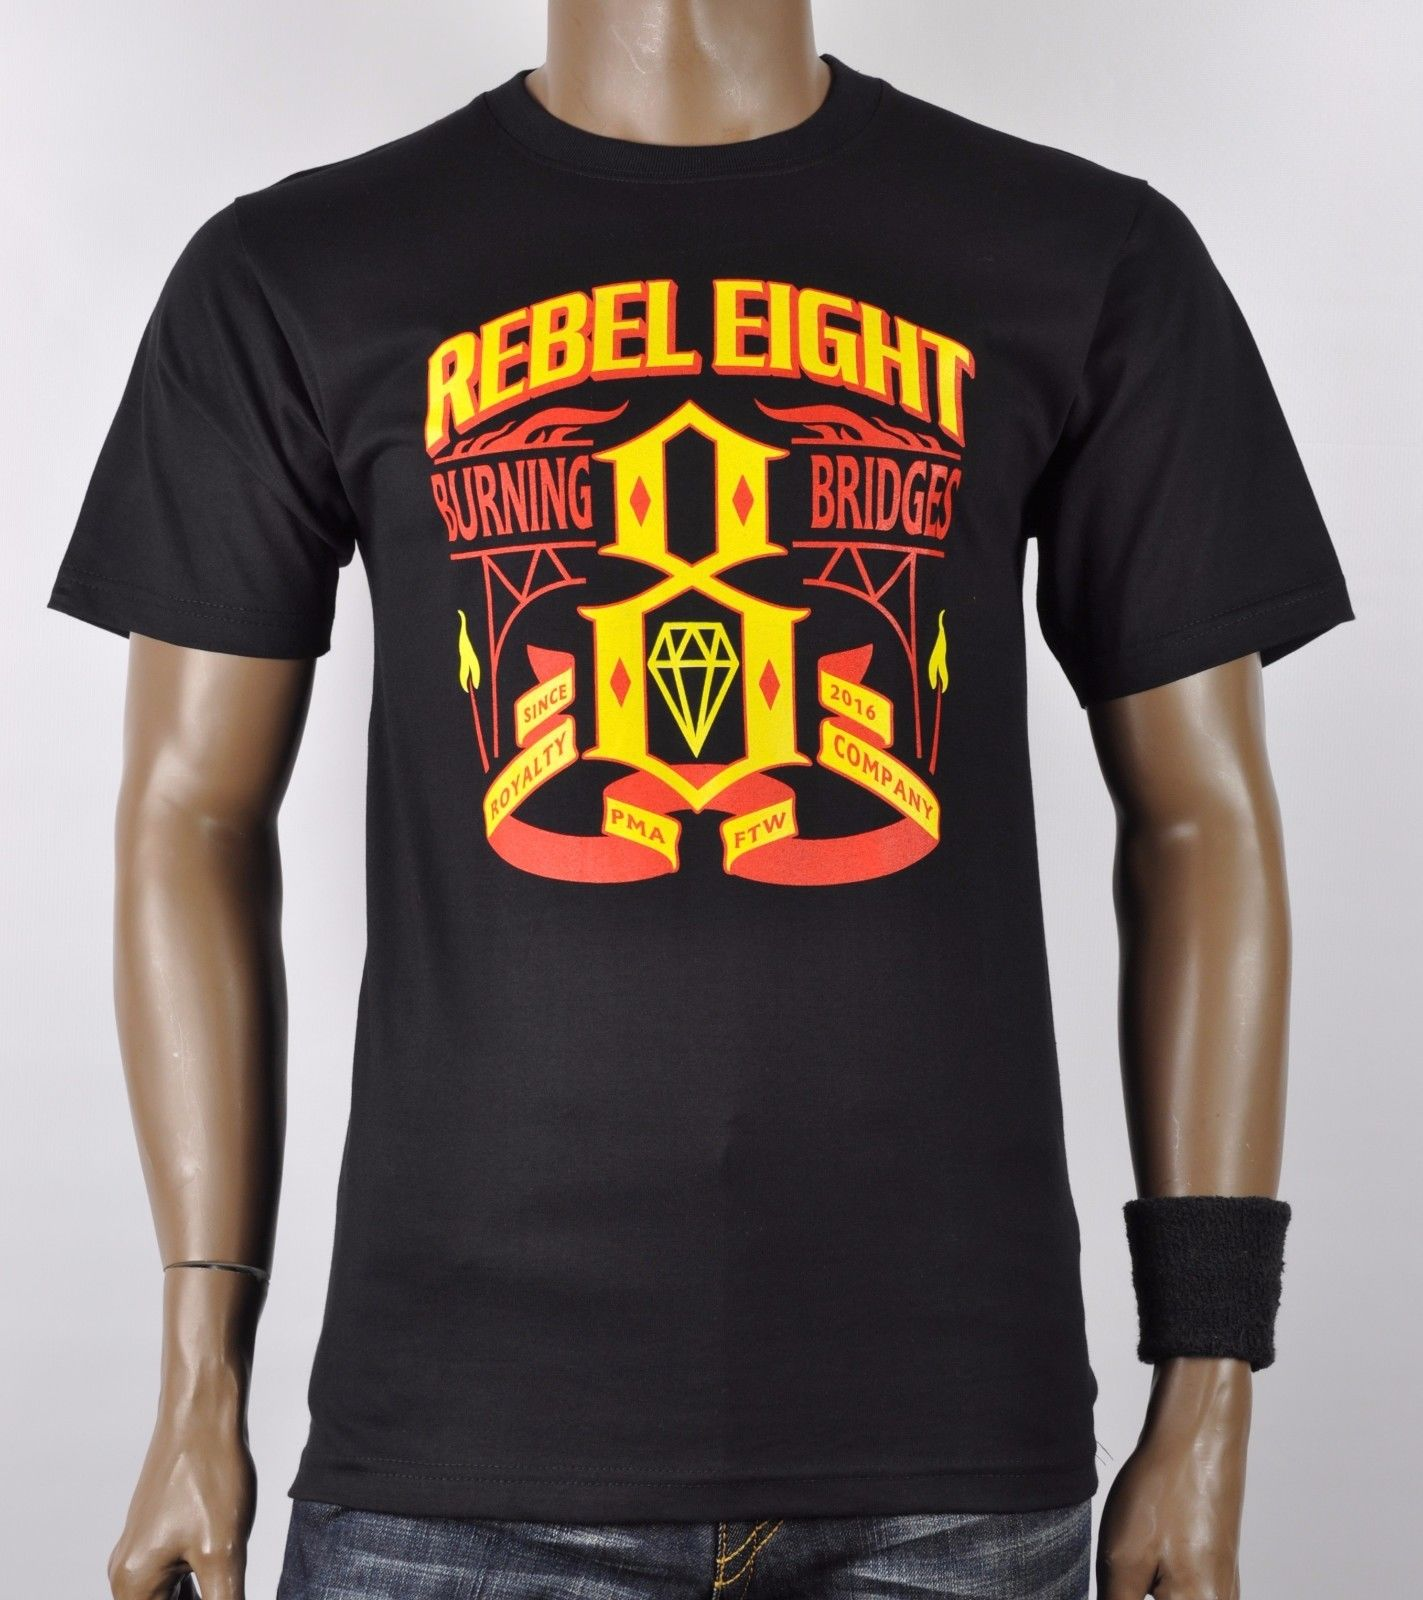 Rebel Eight Burning Bridge Rebel8 Crew Neck T-Shirt in Black Funny Short...